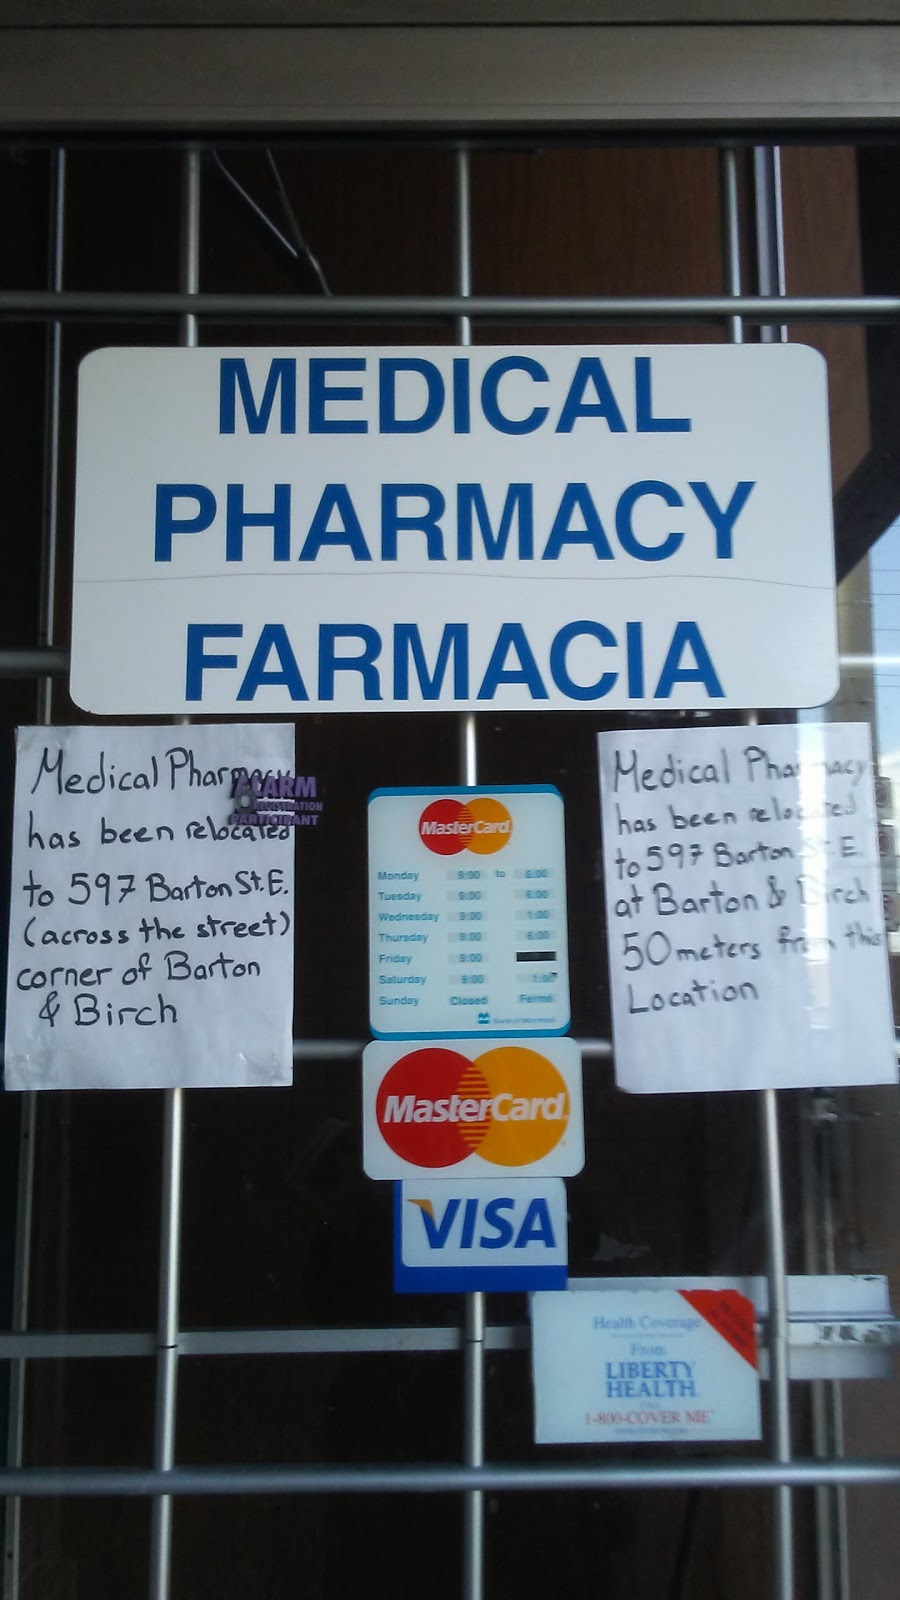 Medical Pharmacy/Farmacia | health | 597 Barton St E, Hamilton, ON L8L 2Z6, Canada | 9055272930 OR +1 905-527-2930